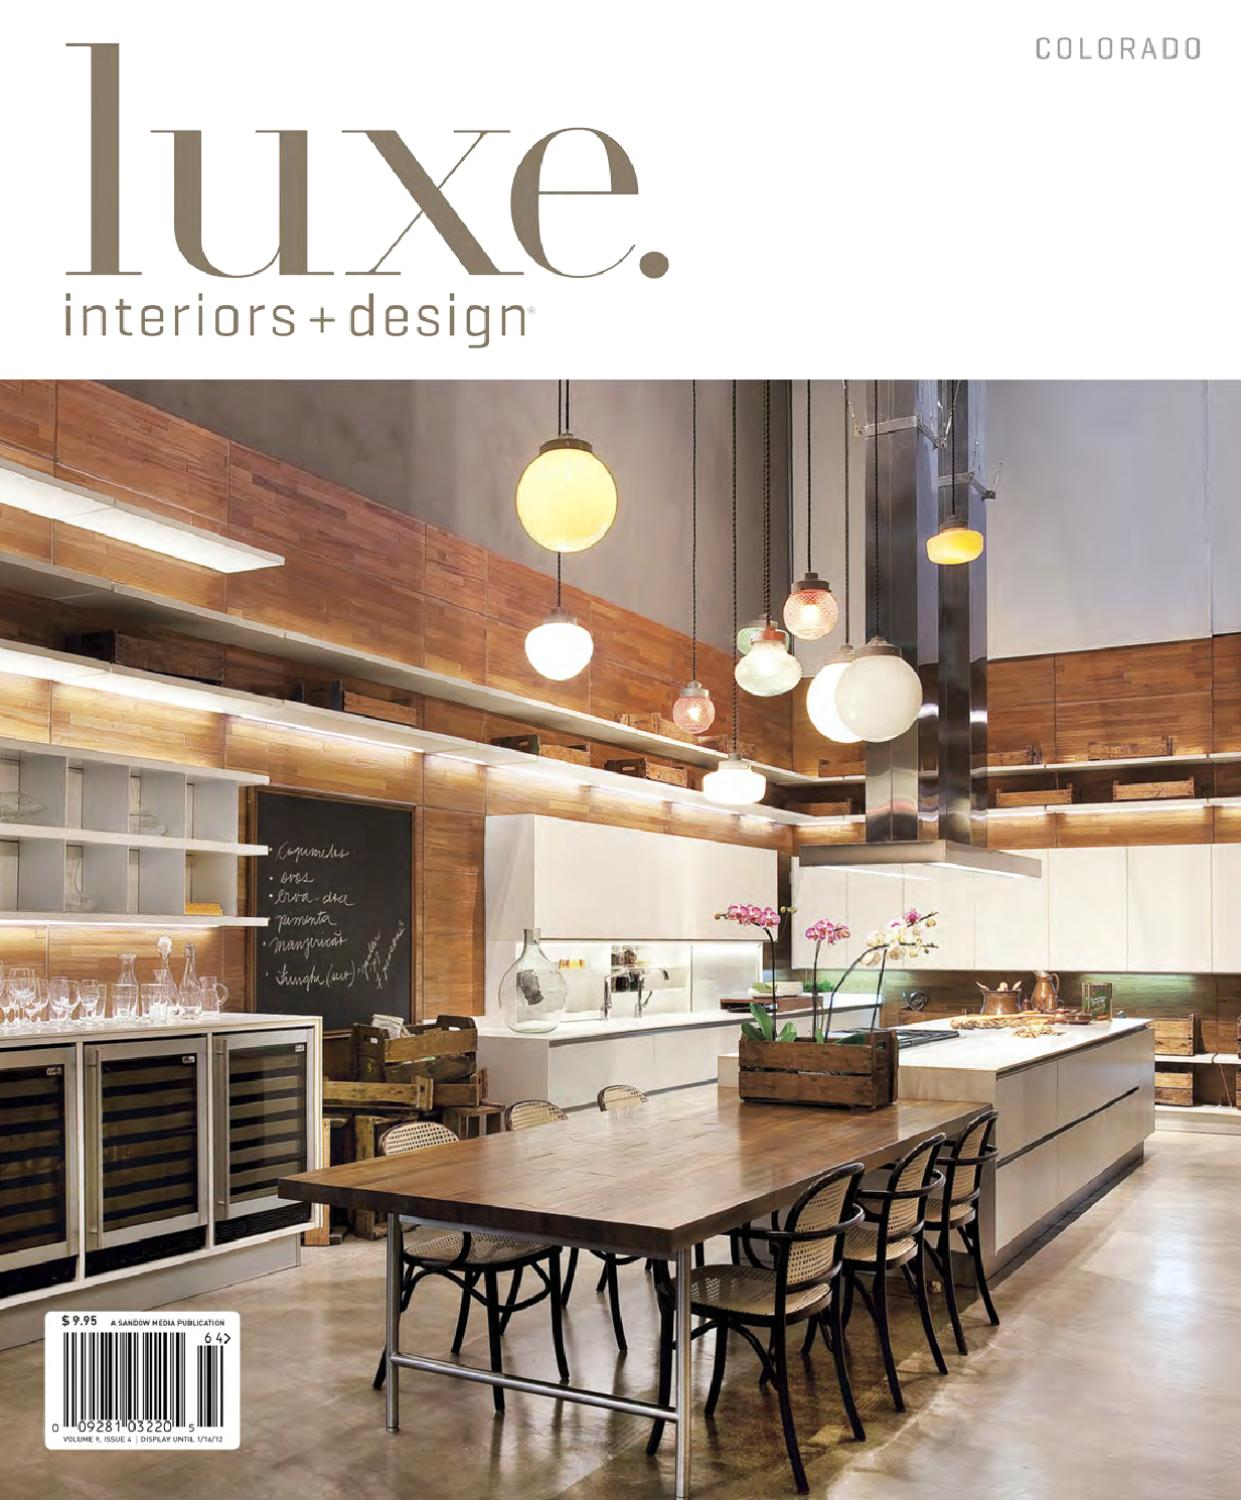 Issuu luxe interiors design colorado 25 by sandow media for Luxe interieur design